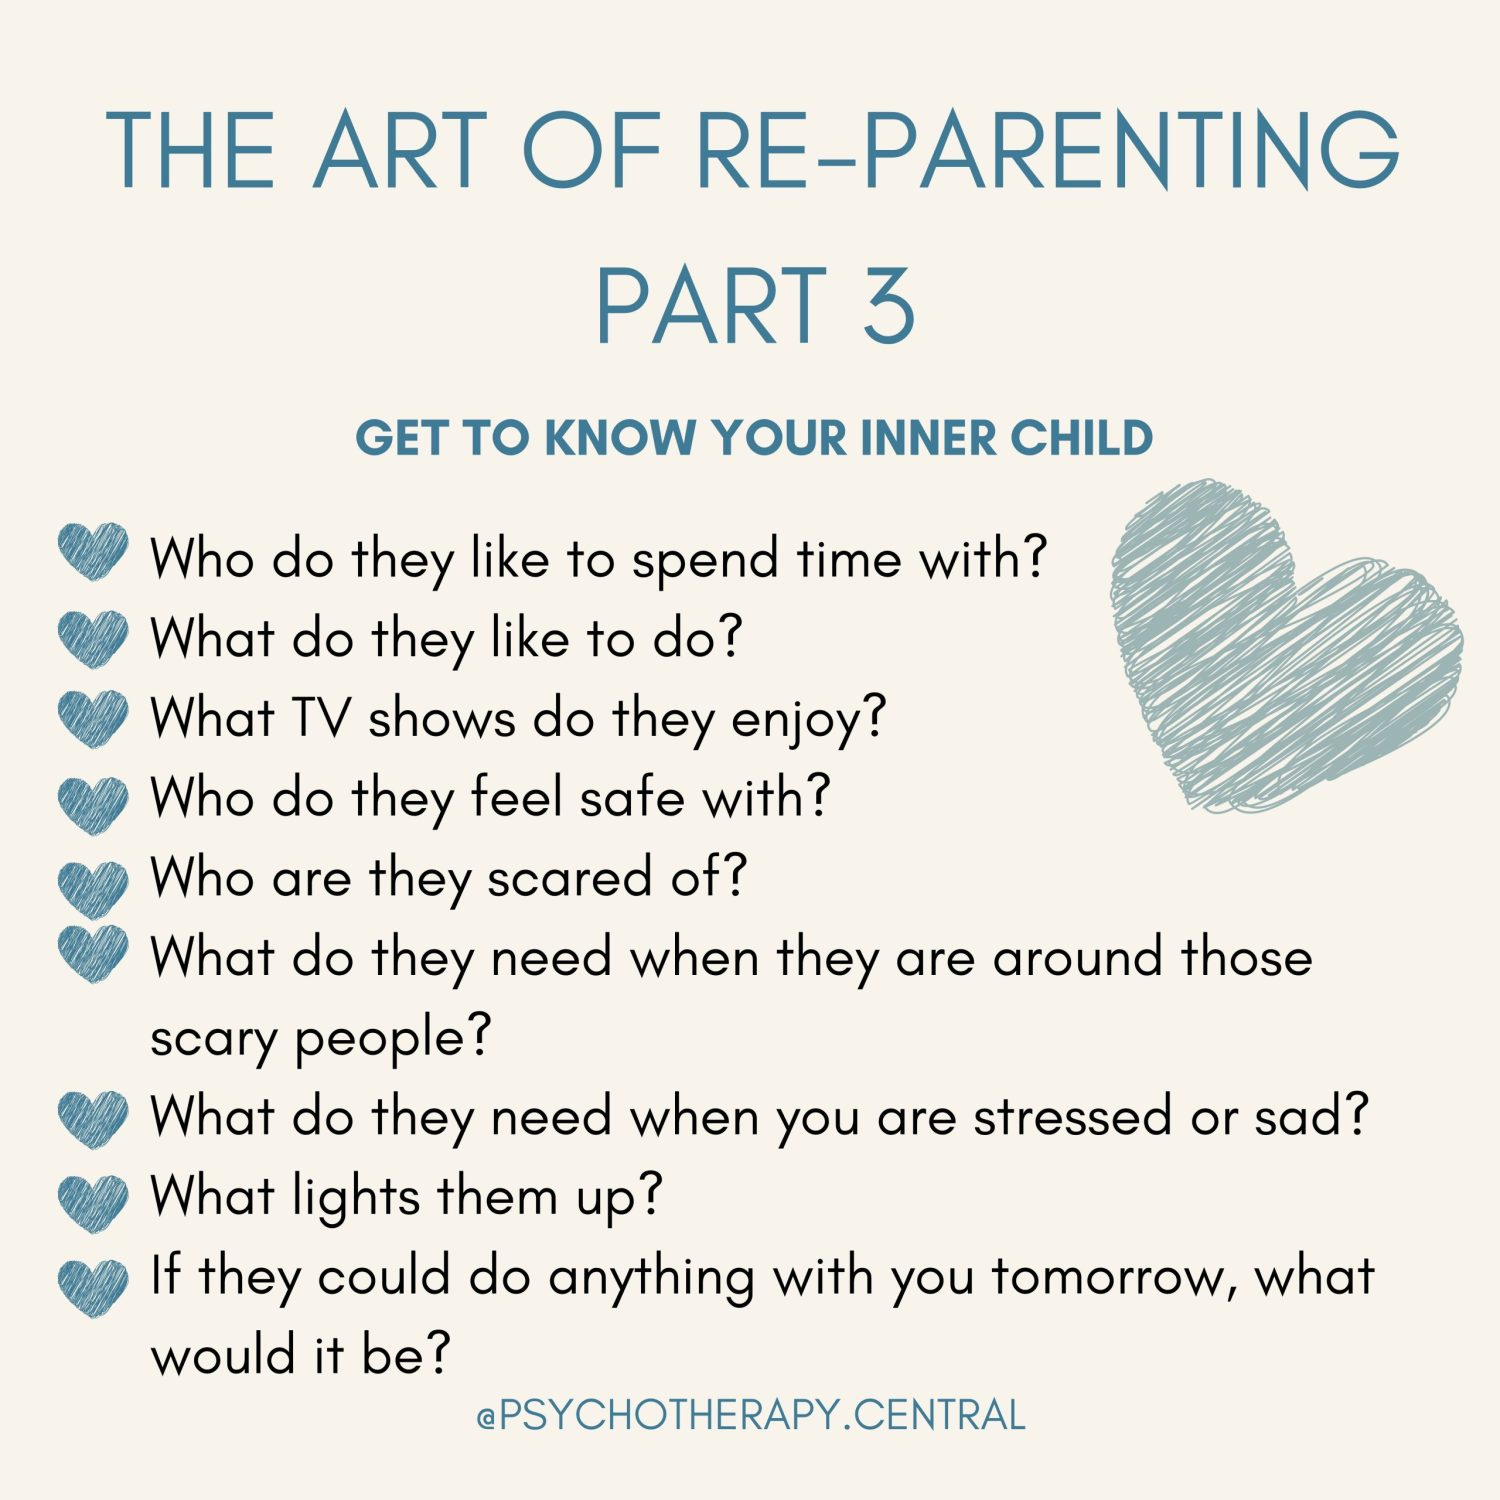 THE-ART-OF-RE-PARENTING-–-PART-3